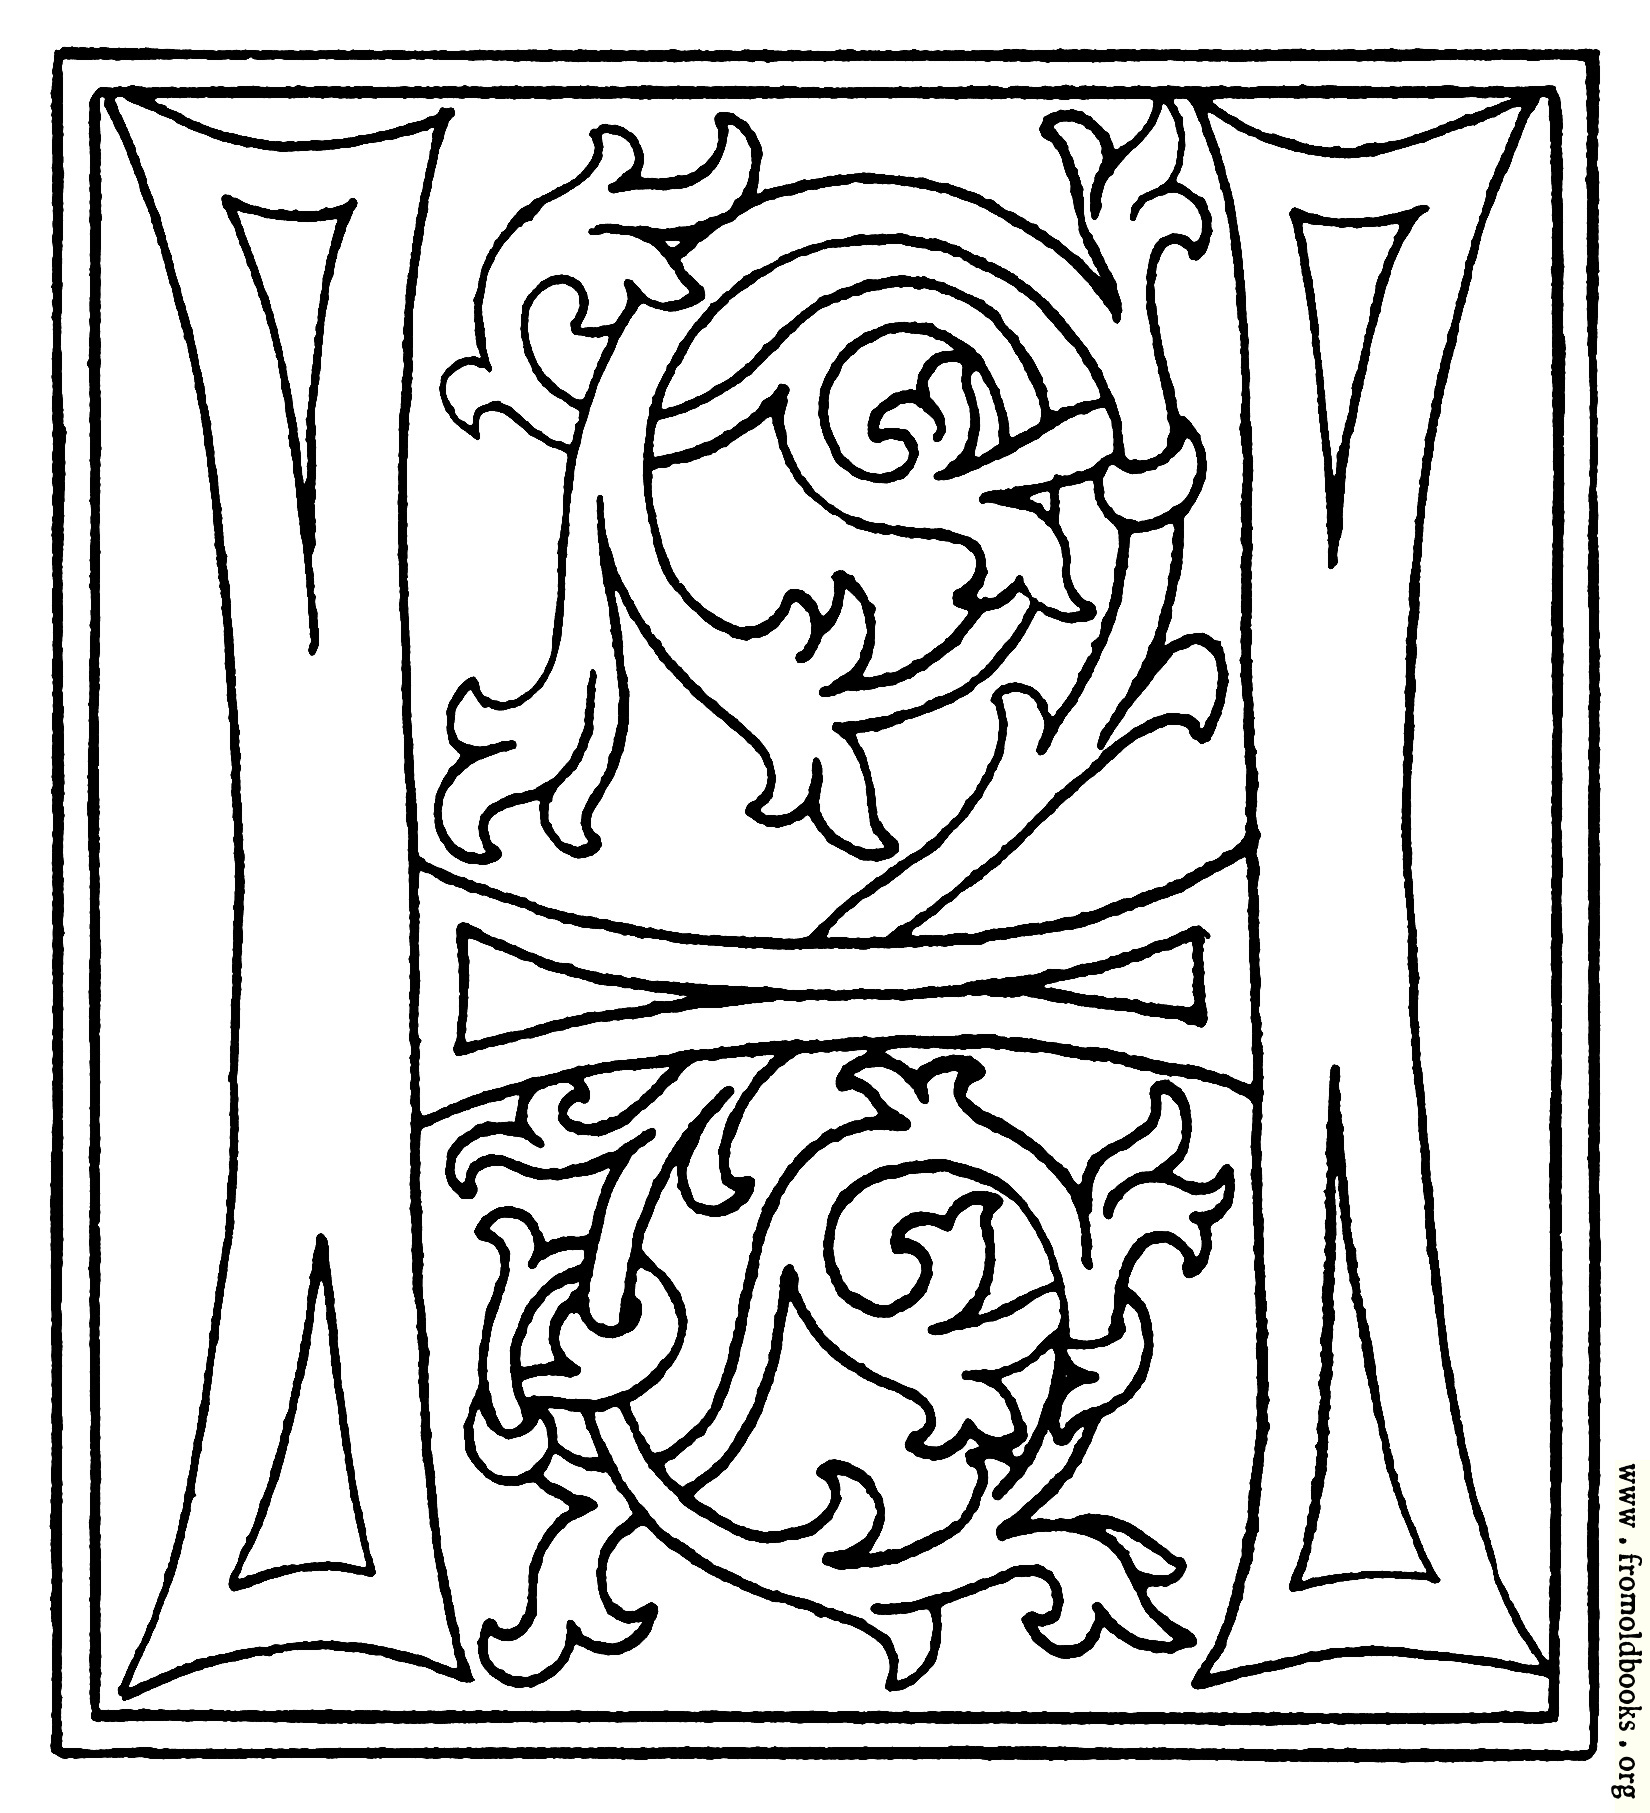 illuminated alphabet templates - clipart initial letter h from late 15th century printed book